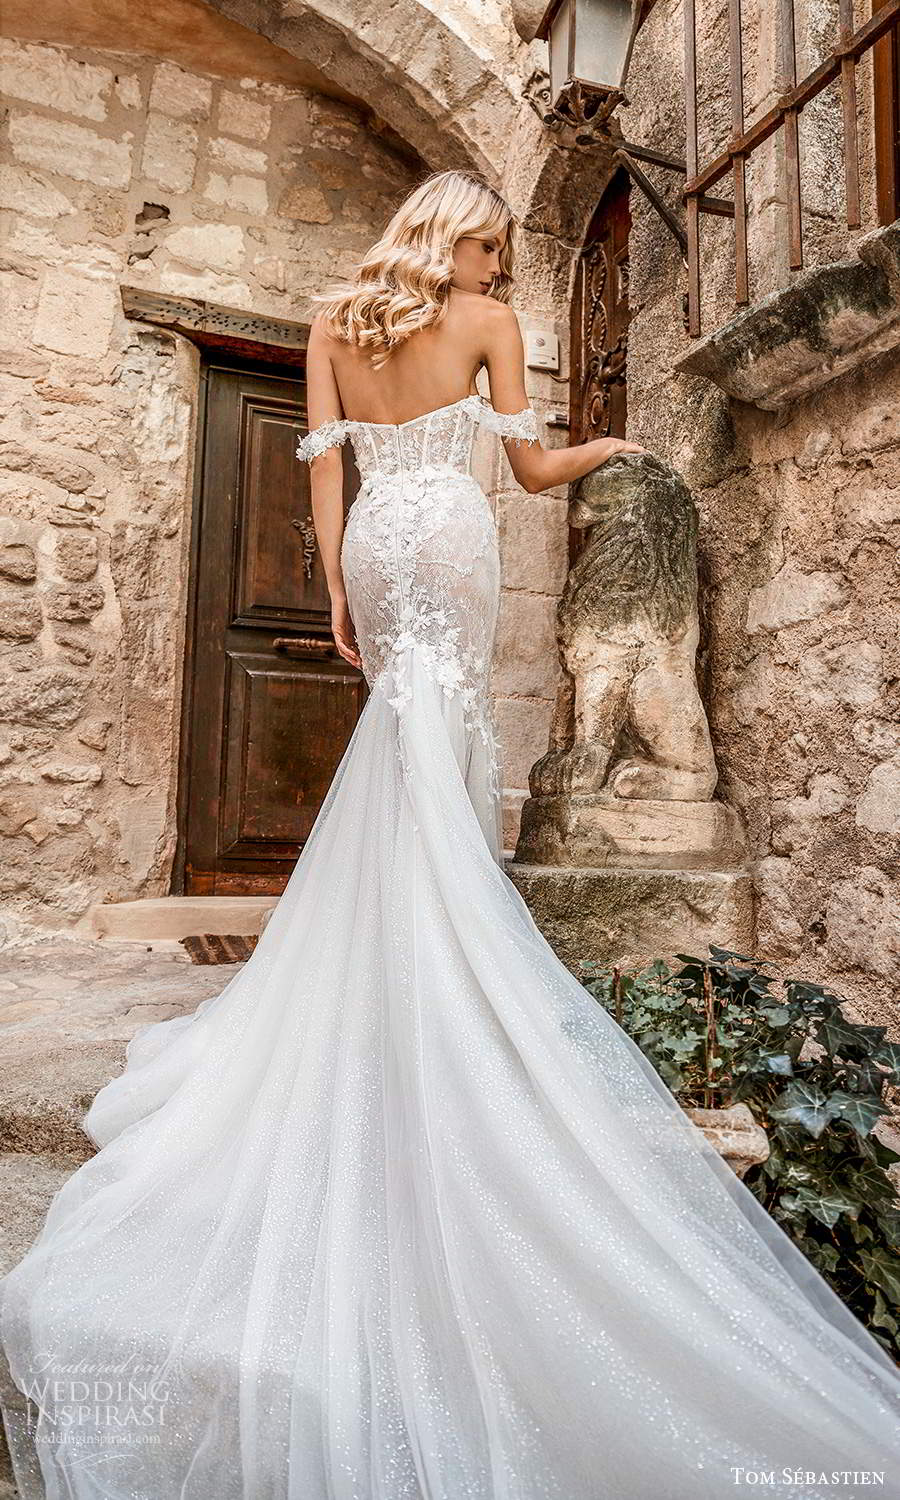 tom sebastien 2021 bridal provence off shoulder straps sweetheart nckline heavily embellished bodice fit flare mermaid wedding dress chapel train (4) bv